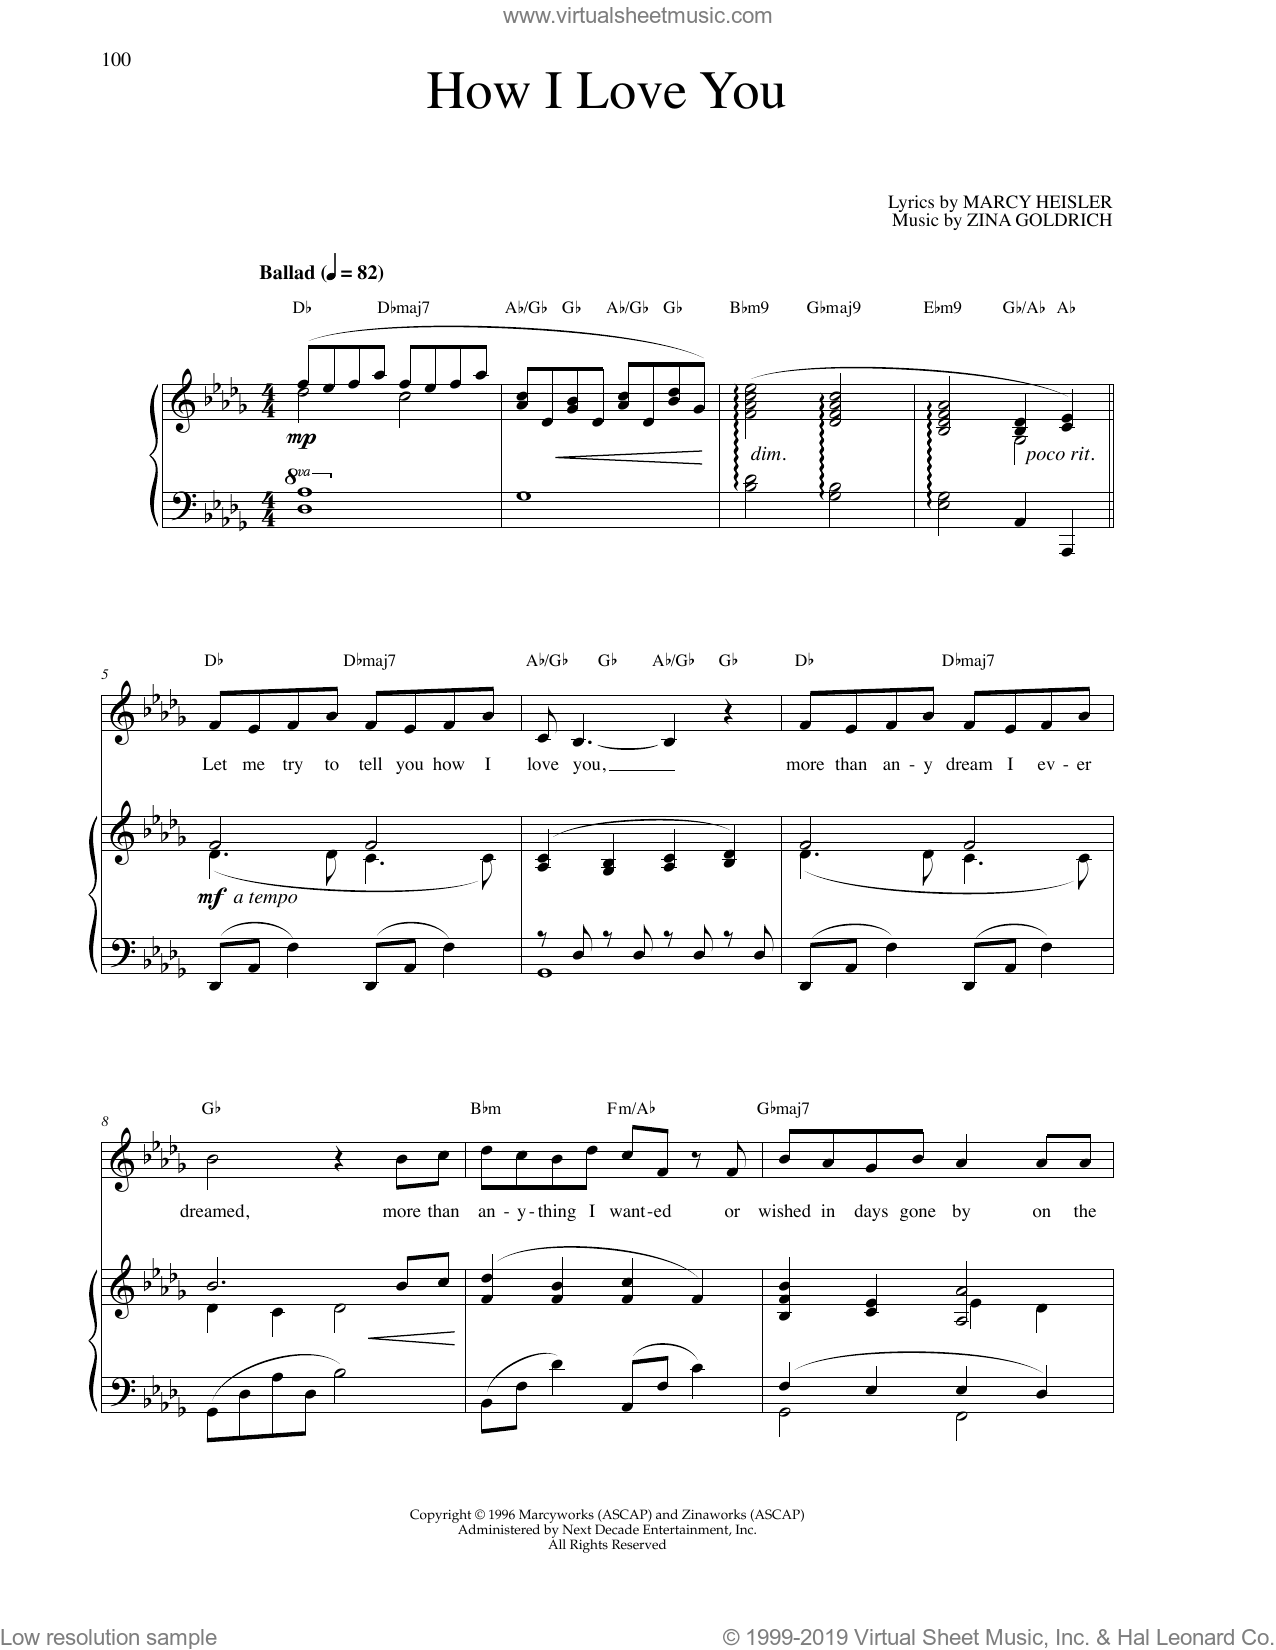 How I Love You sheet music for voice and piano by Zina Goldrich